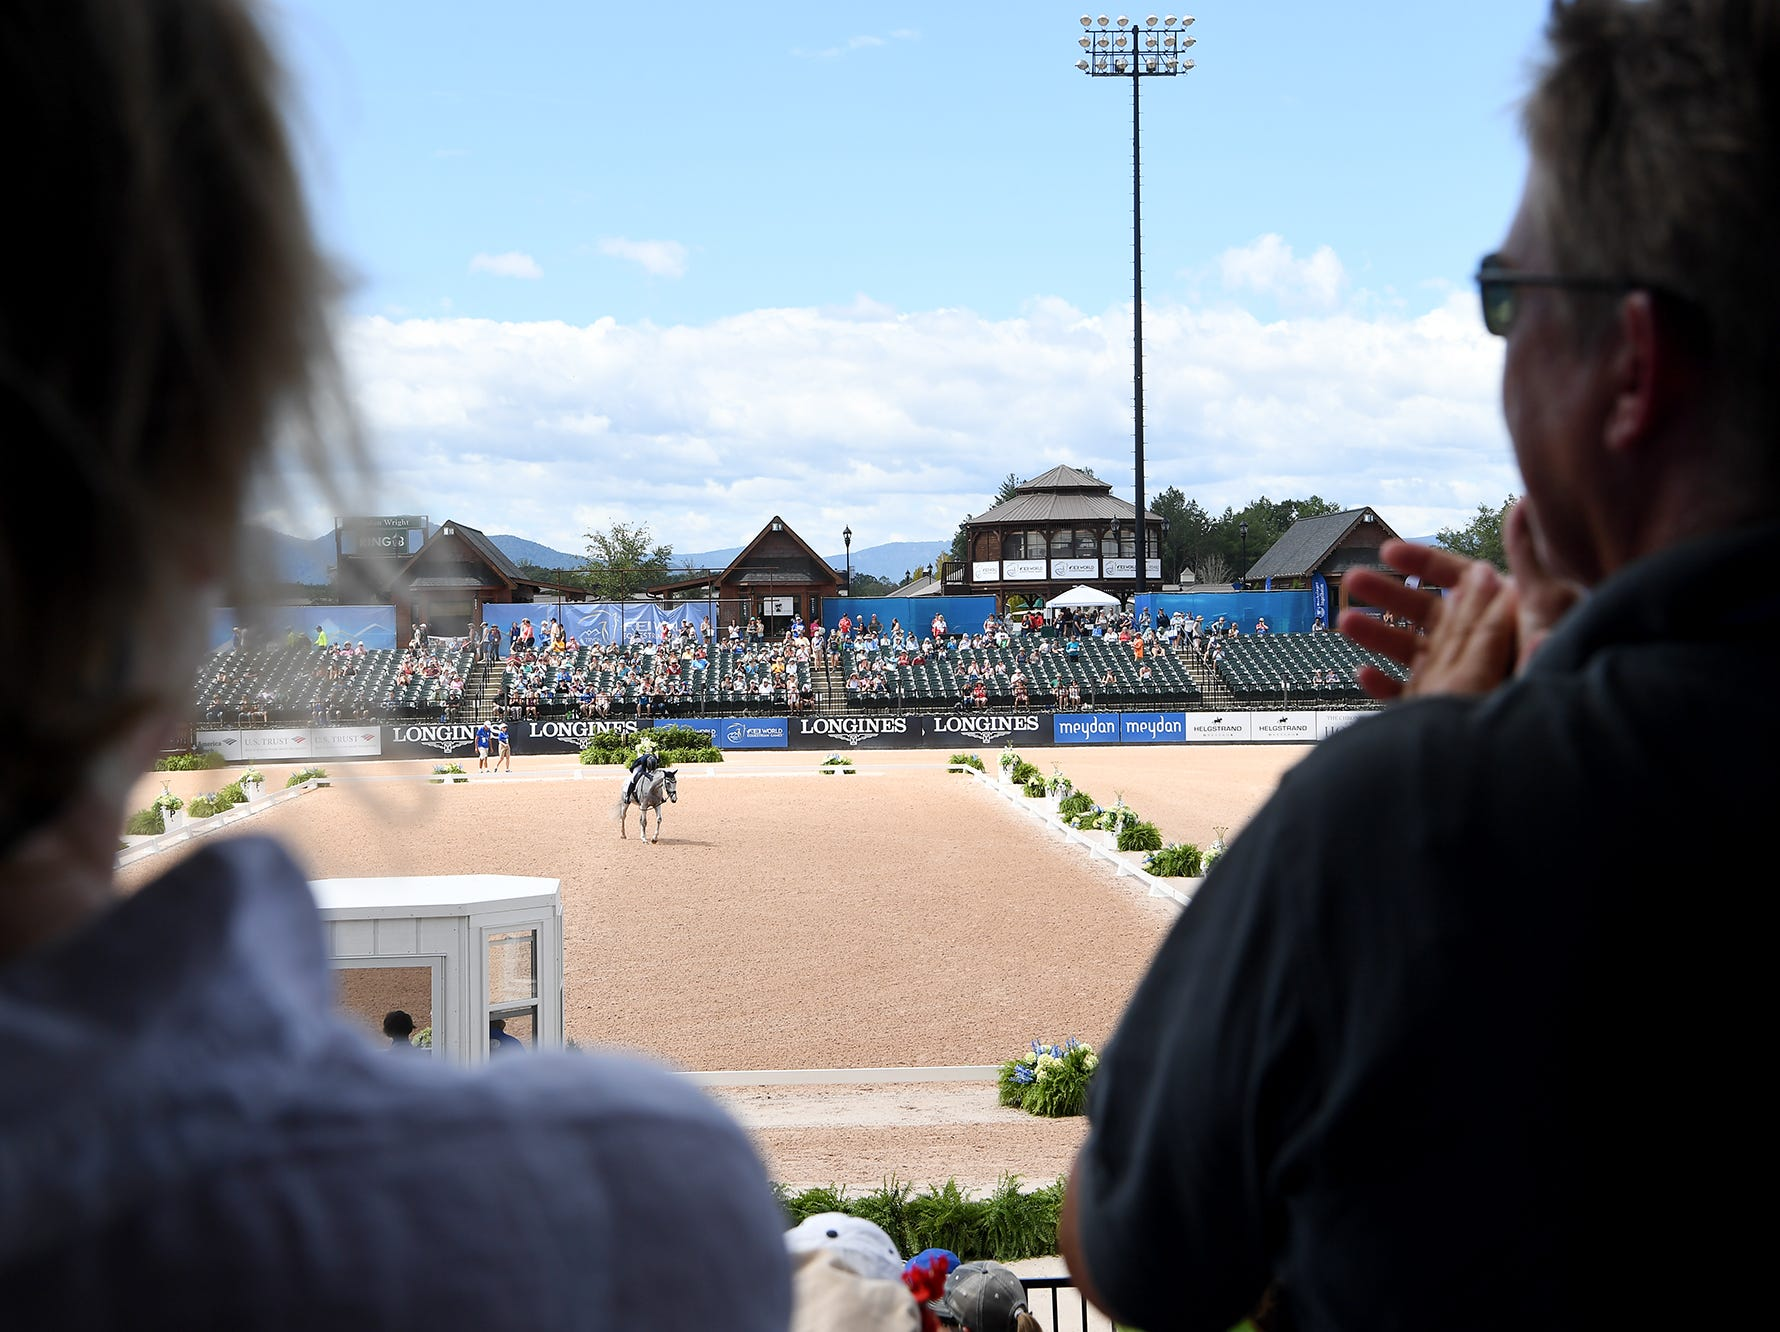 Scenes from the third day of competition at the World Equestrian Games in Tryon Sept. 14, 2018.